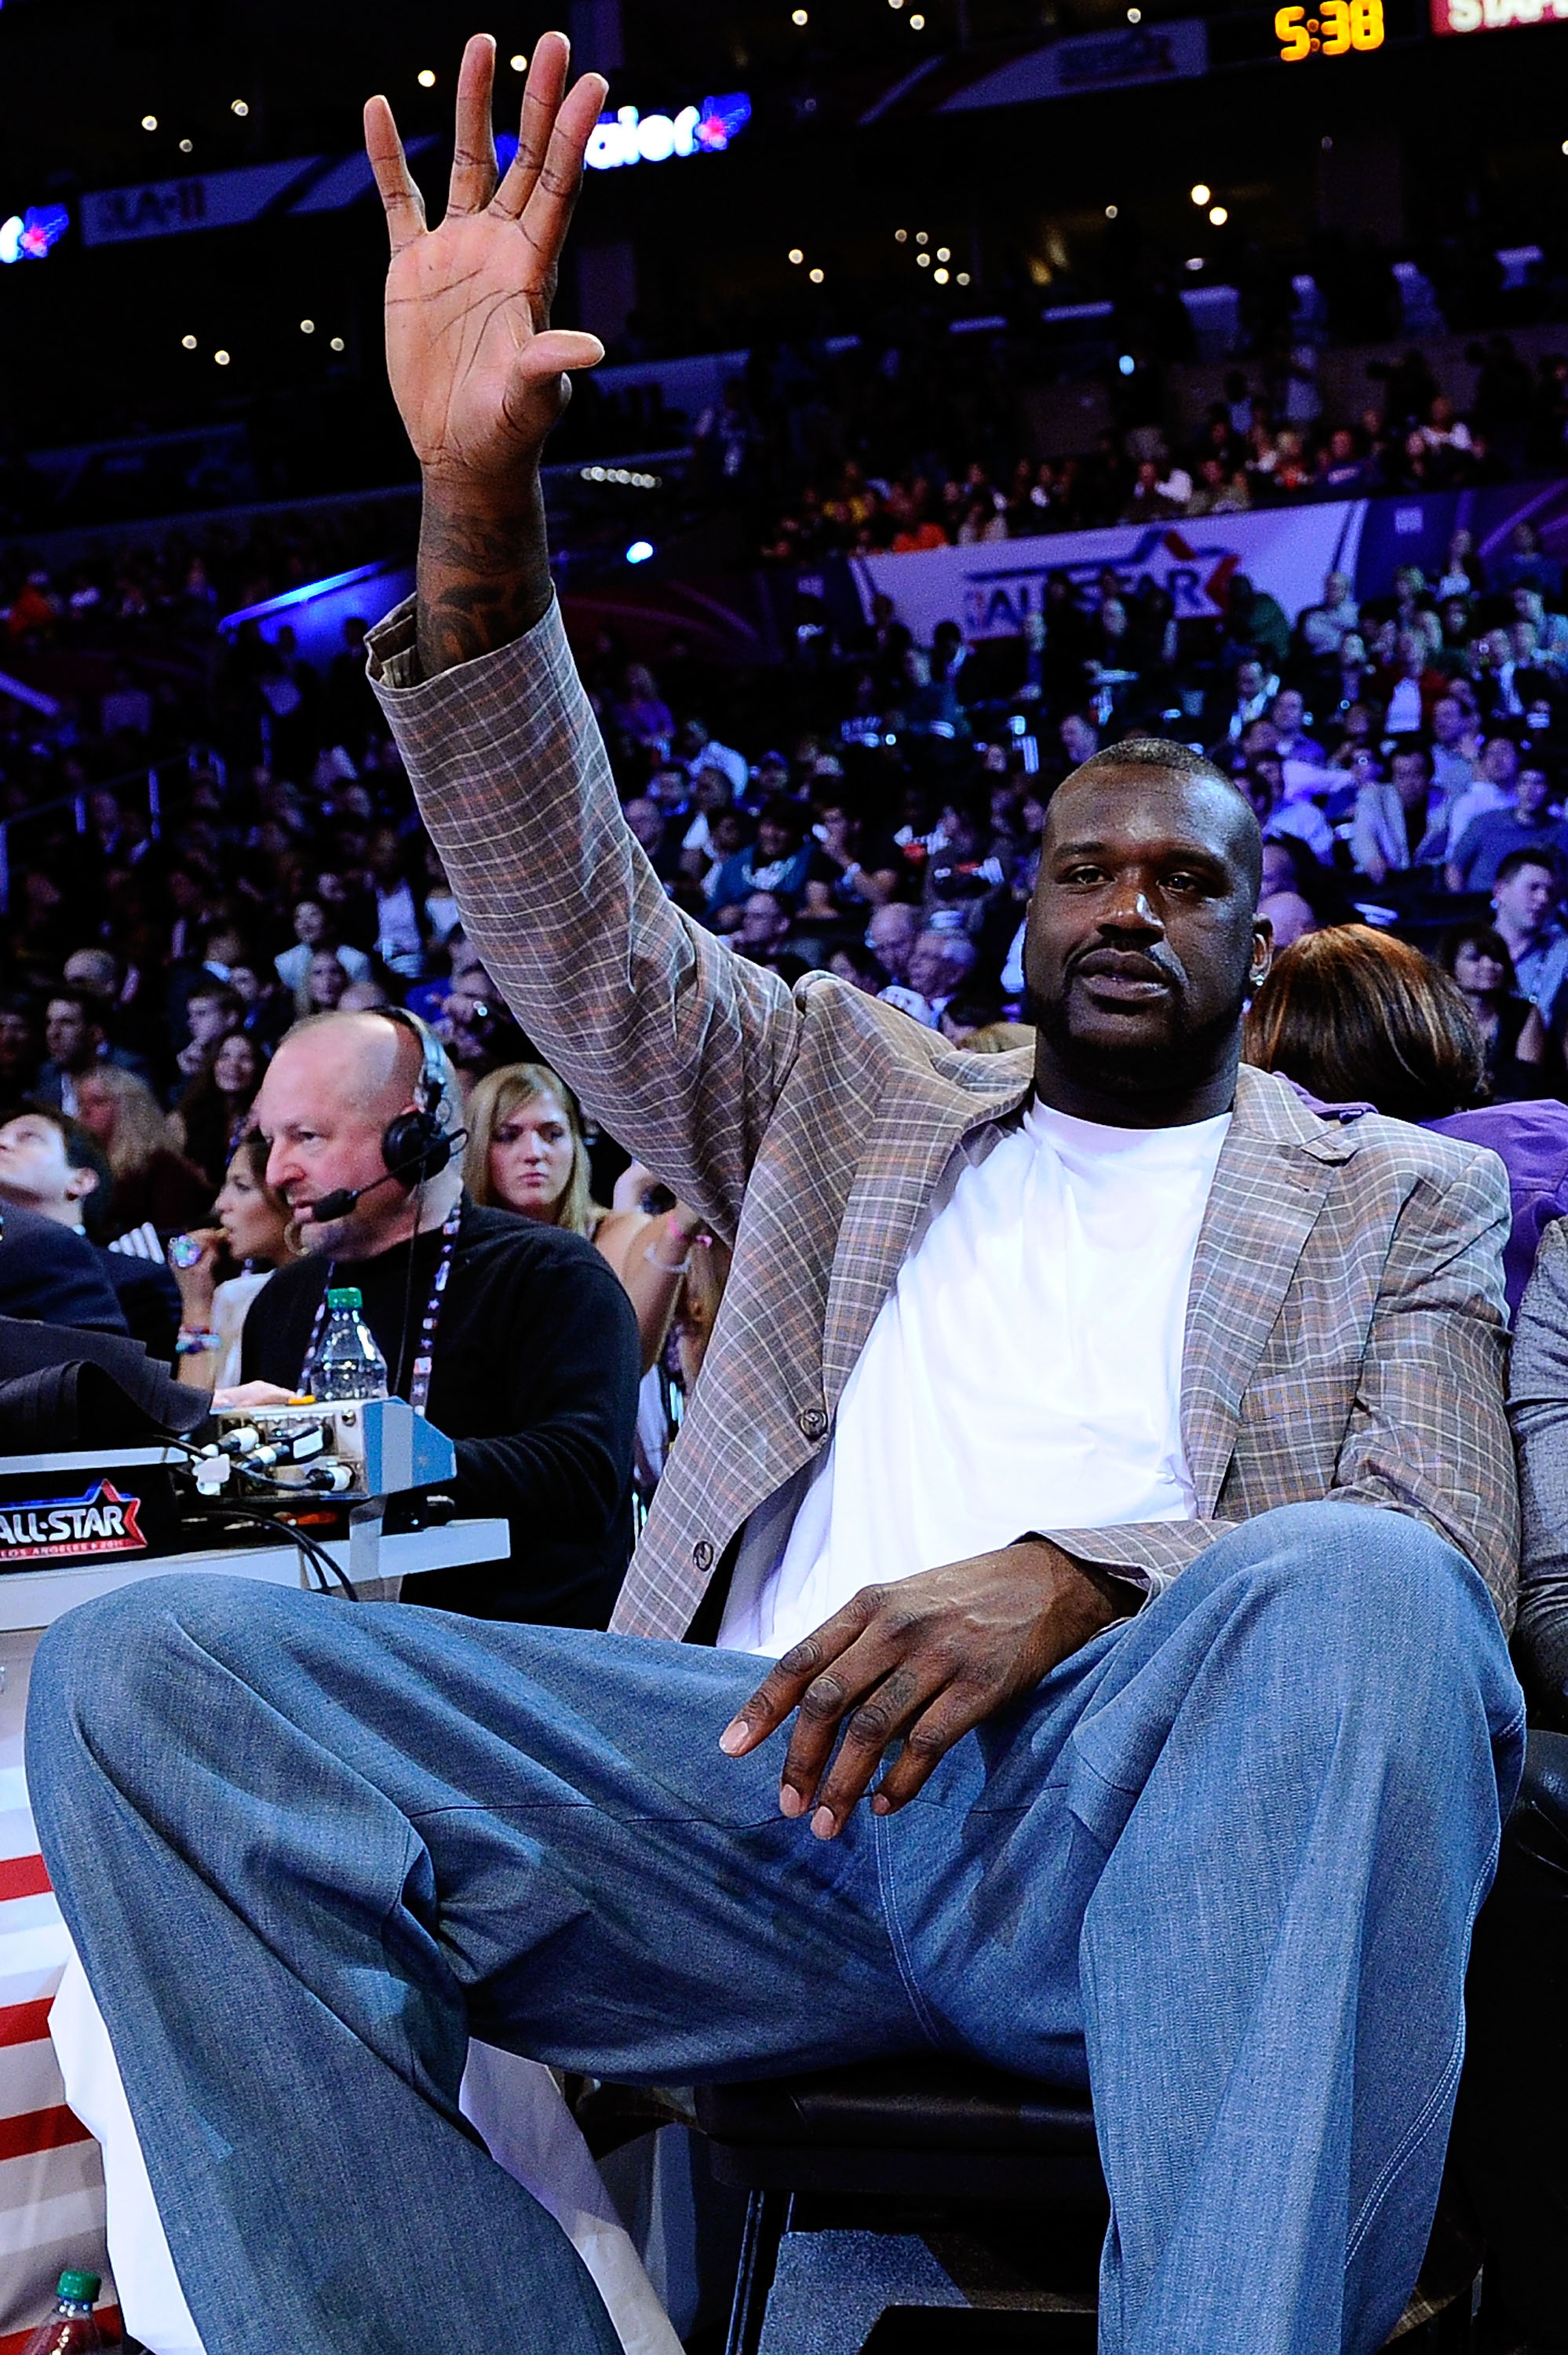 LOS ANGELES, CA - FEBRUARY 19:  Shaquille O'Neal of the Boston Celtics waves as he attends NBA All-Star Saturday night presented by State Farm at Staples Center on February 19, 2011 in Los Angeles, California.  (Photo by Kevork Djansezian/Getty Images)